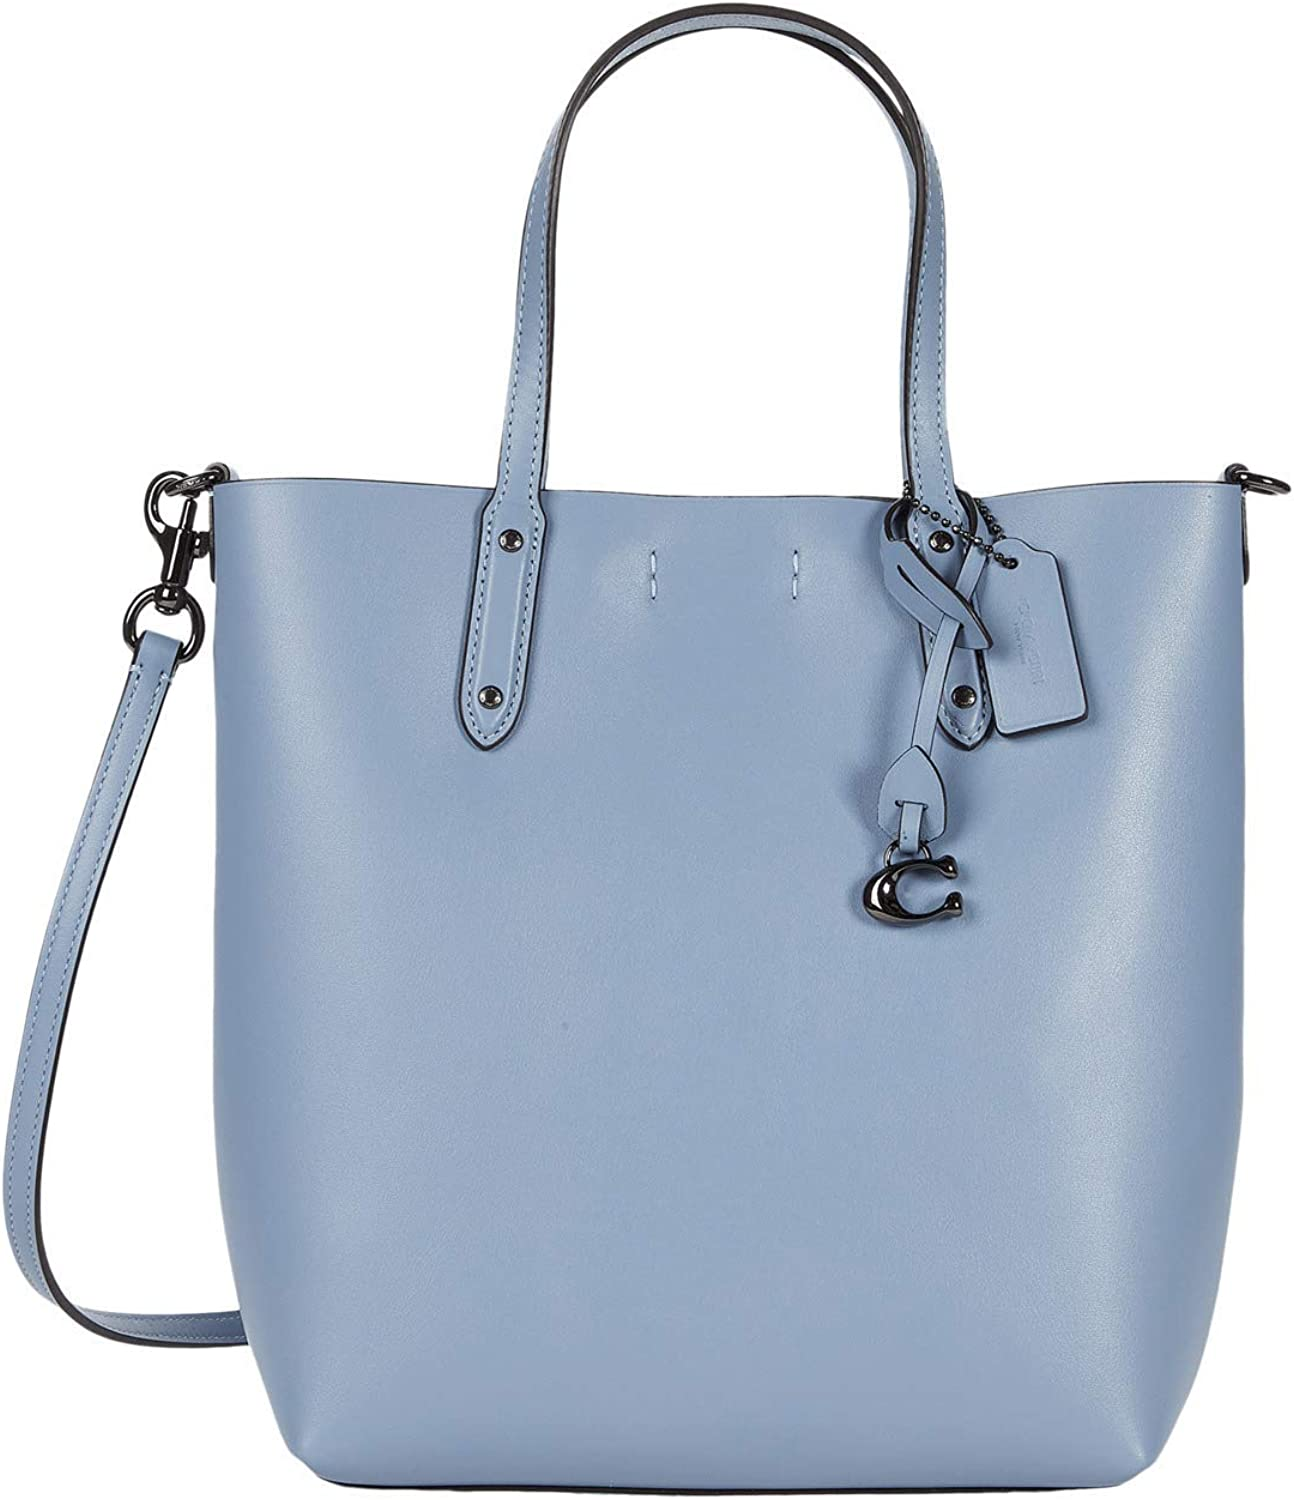 COACH Central Shopper Tote